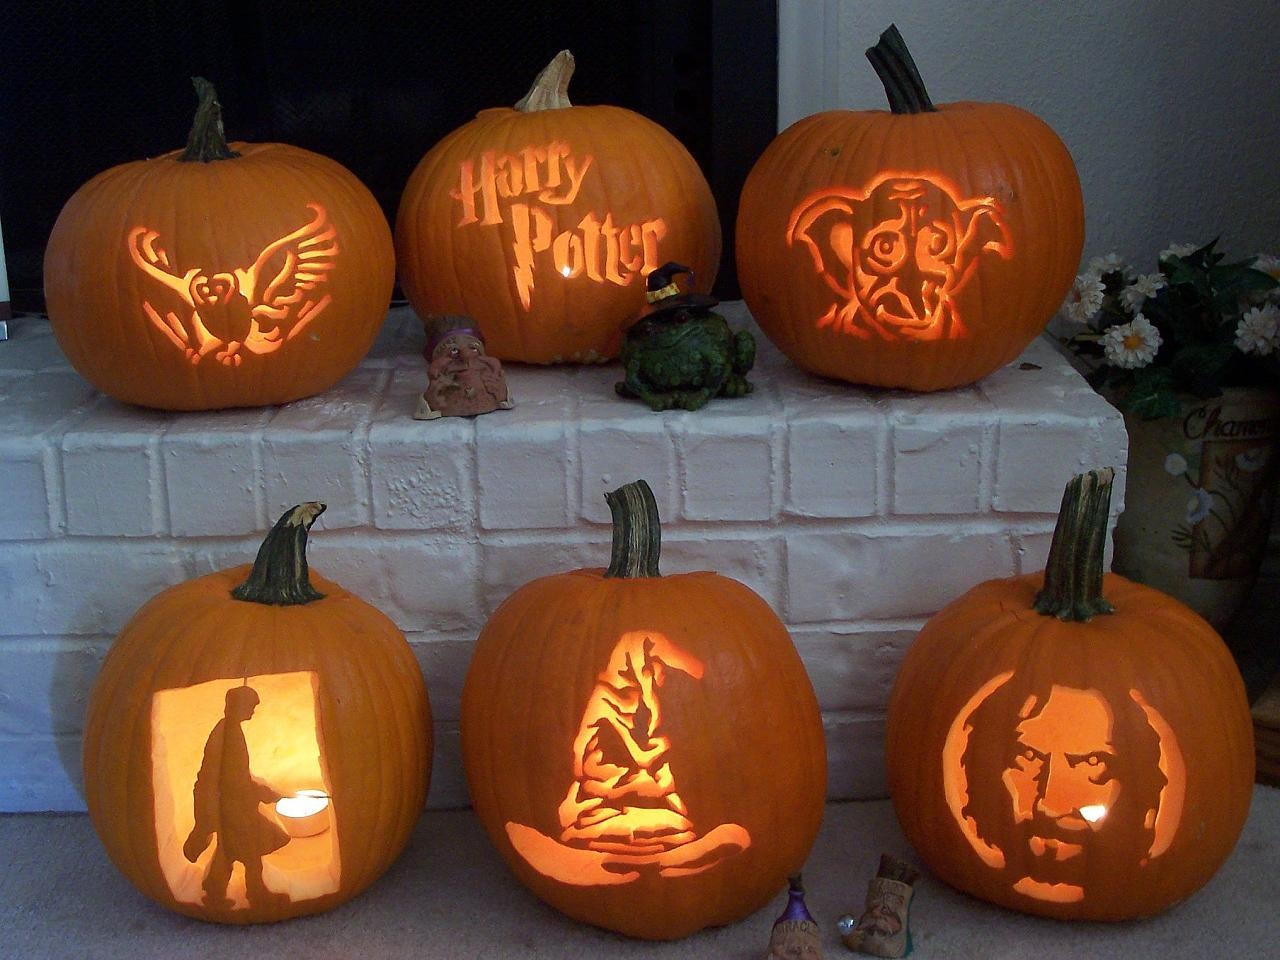 planning a harry potter halloween party in 10 magical steps - Hogwarts Halloween